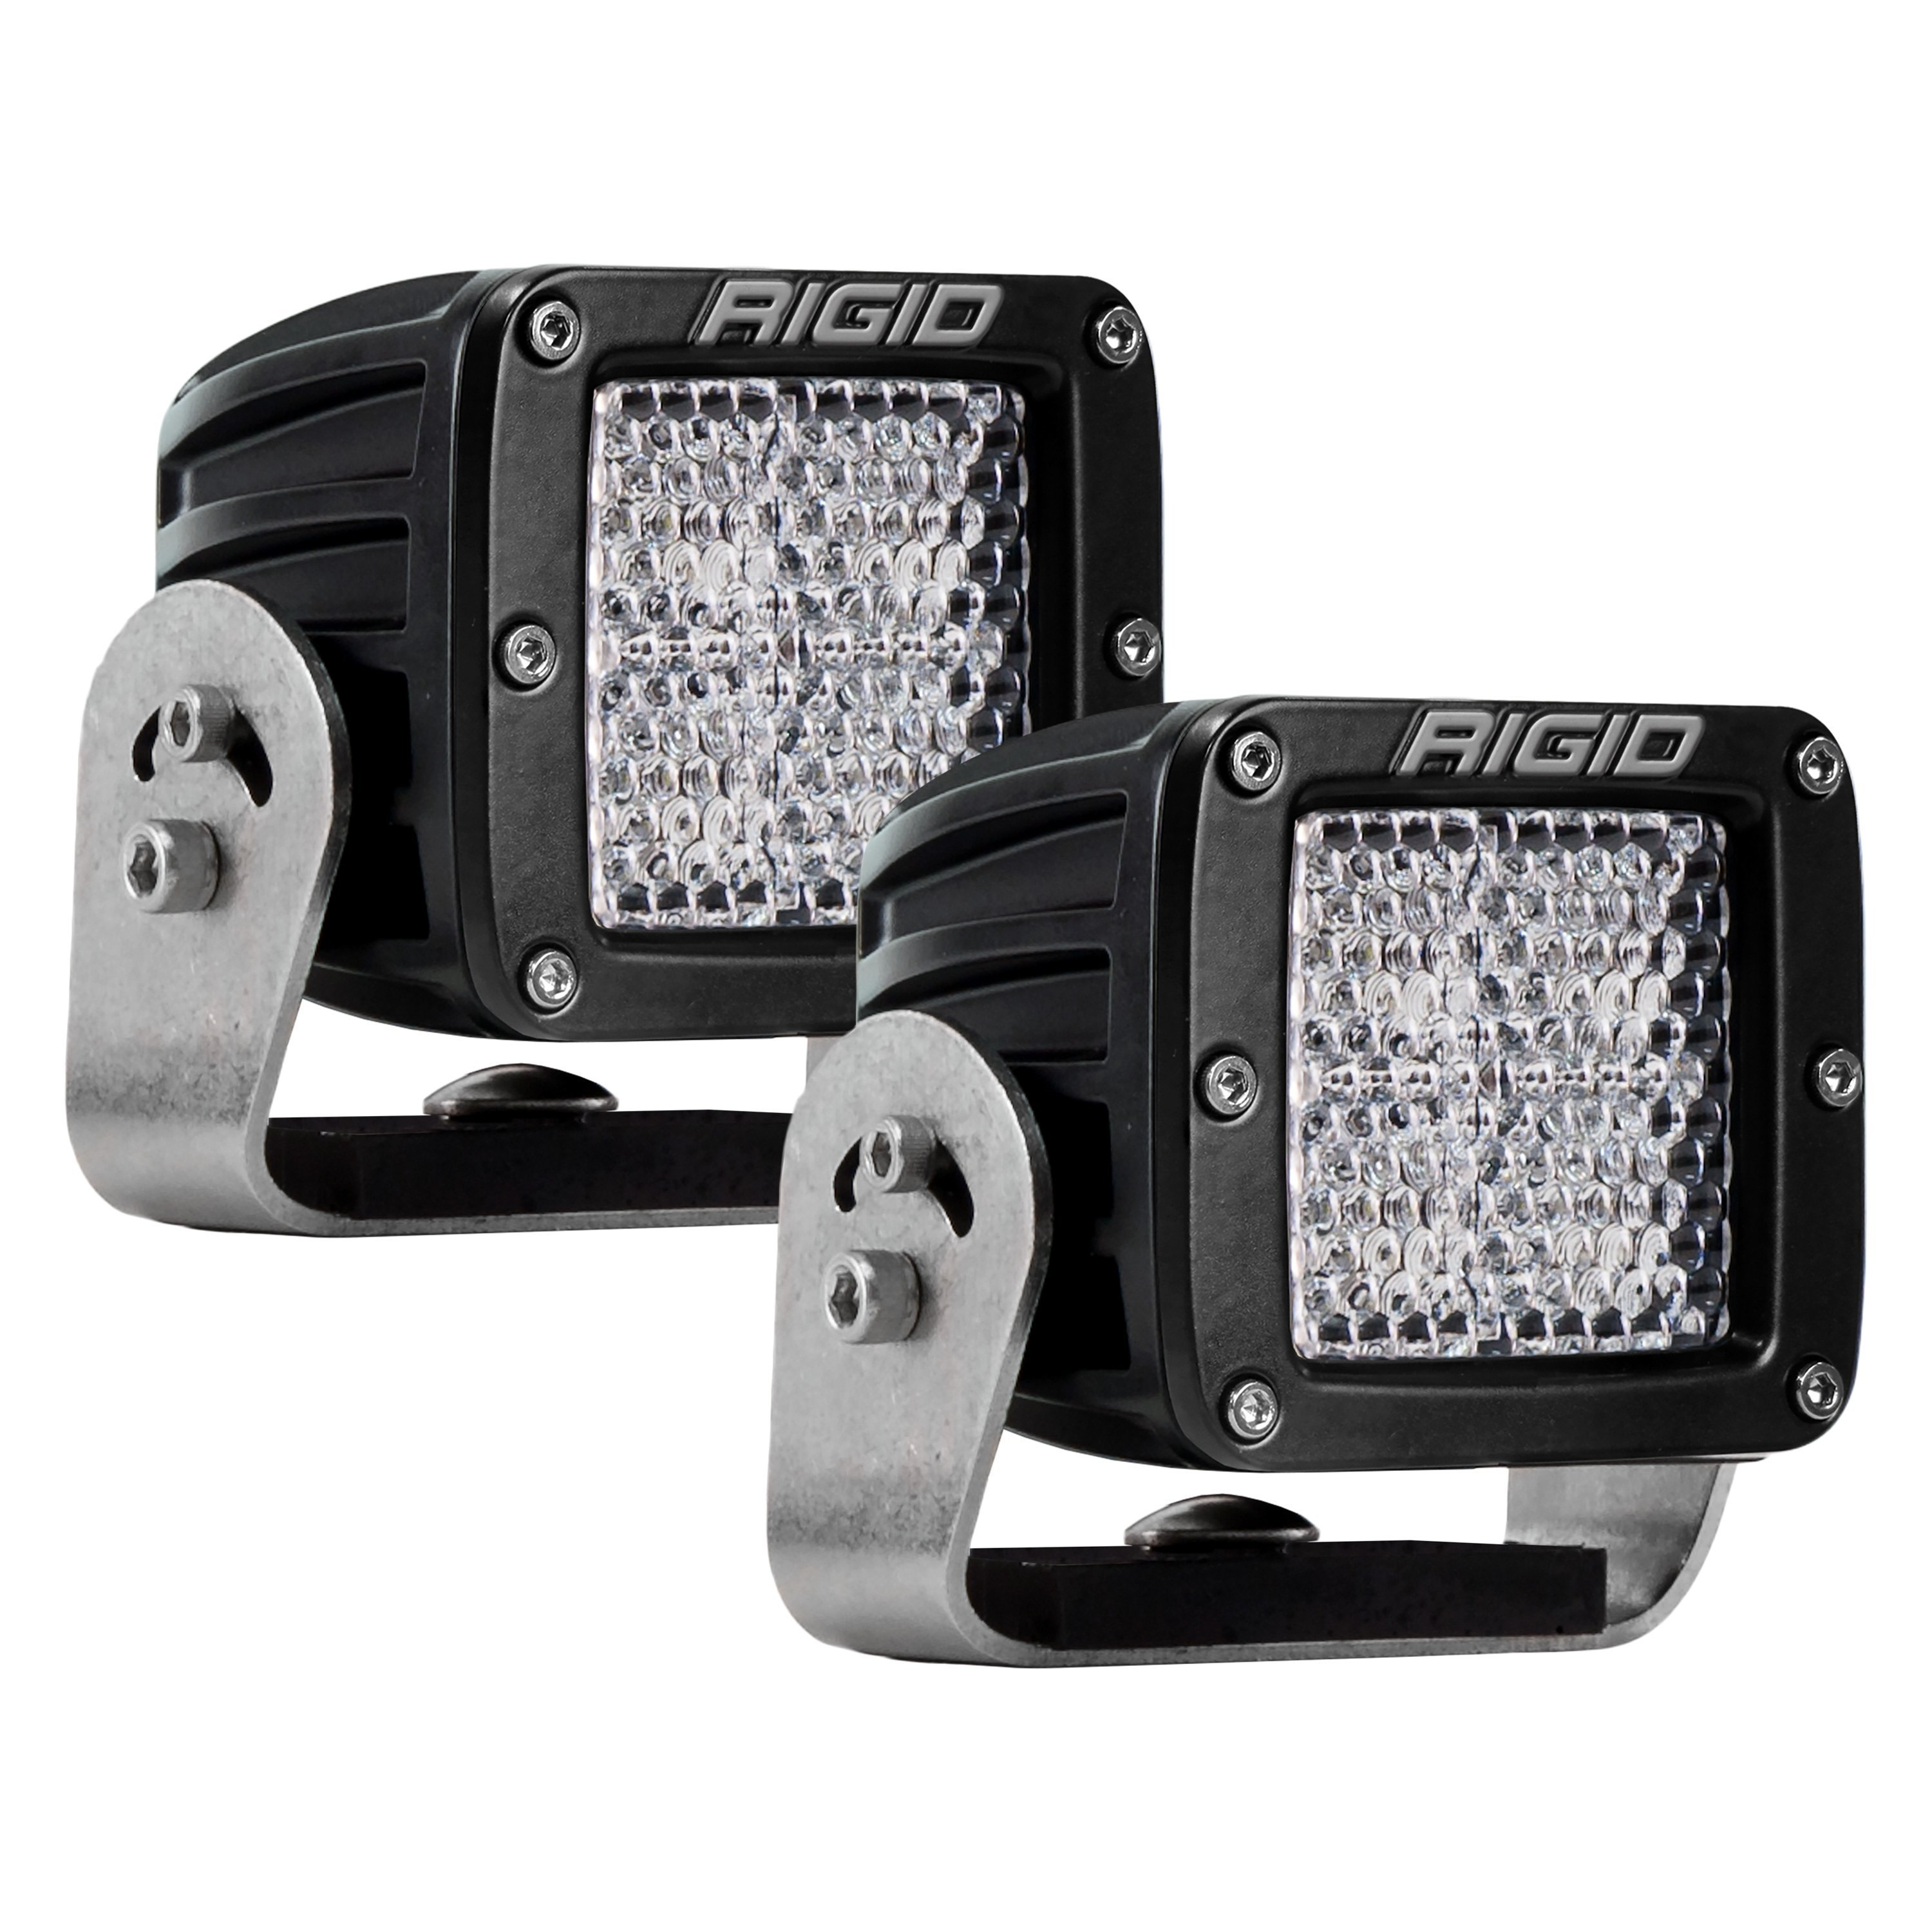 CLEAR PROTECTIVE COVER FOR RIGID INDUSTRIES LED D-SERIES RADIANCE PODS DUALLY